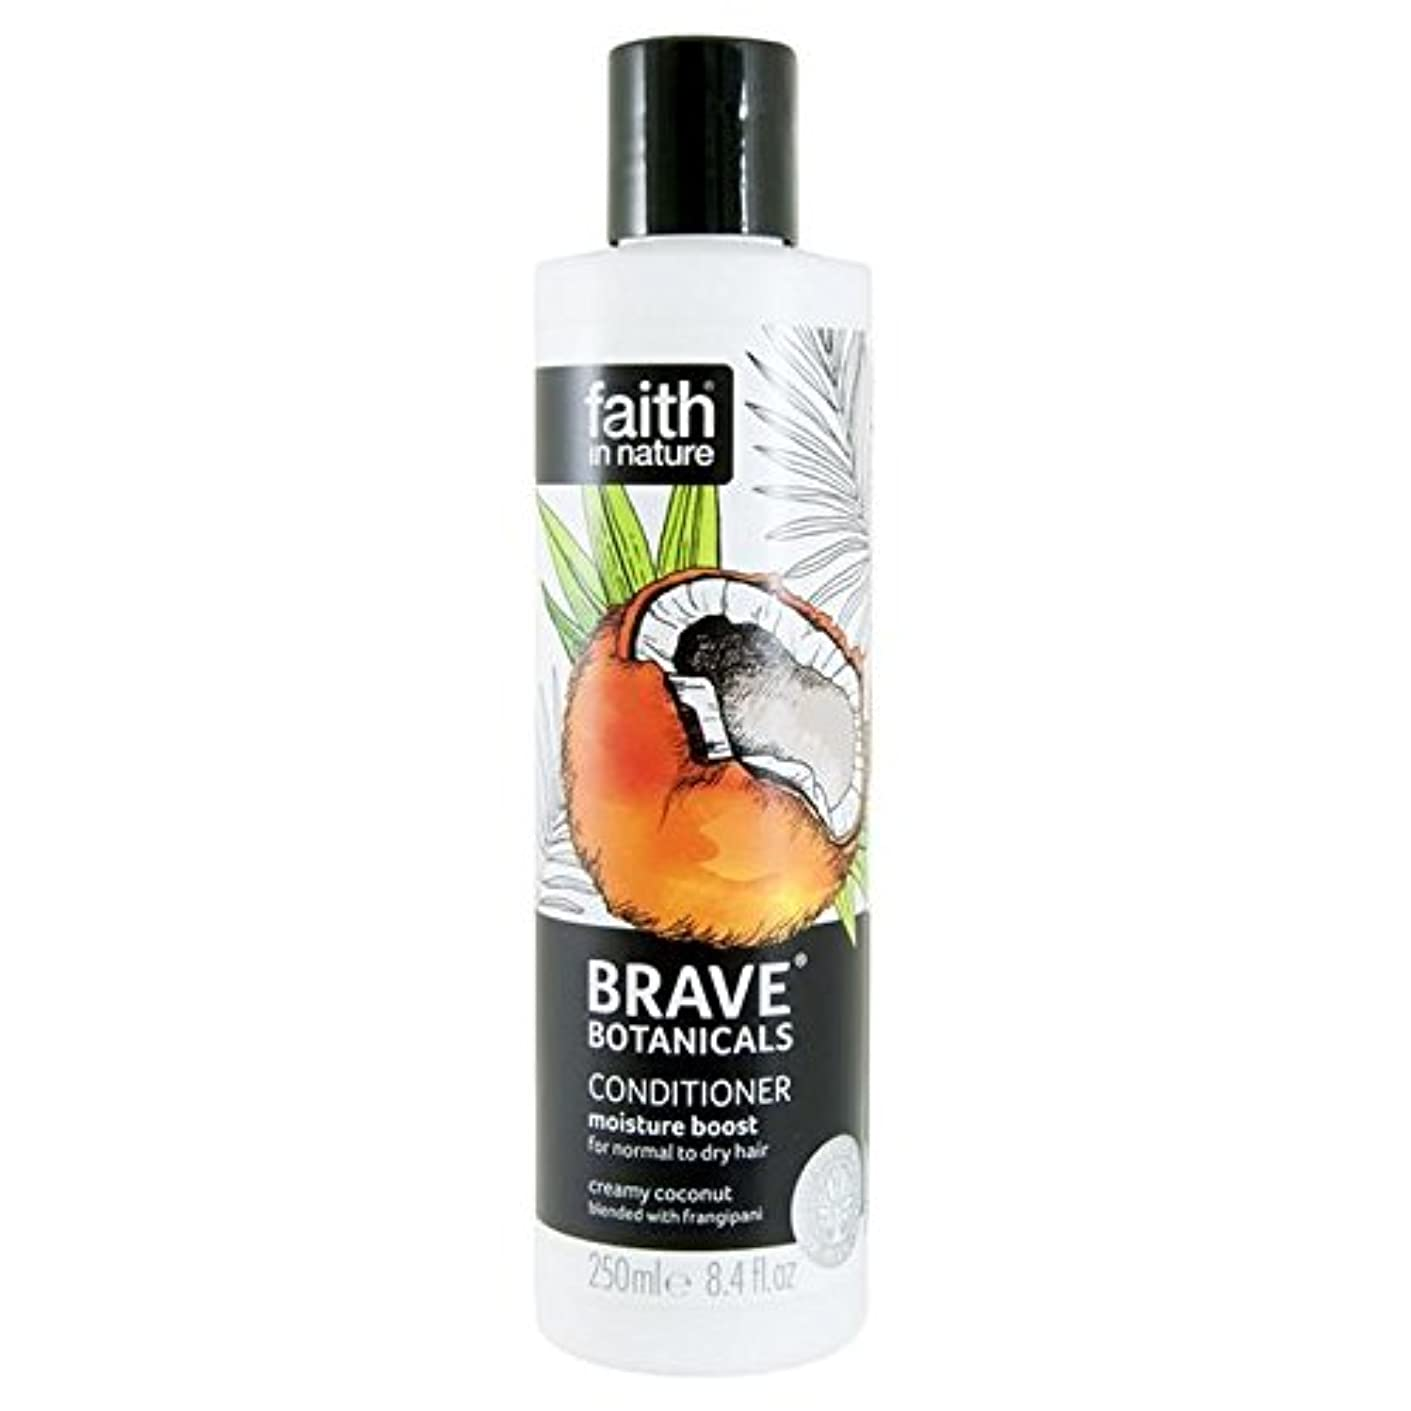 神経障害群衆クリックBrave Botanicals Coconut & Frangipani Moisture Boost Conditioner 250ml (Pack of 4) - (Faith In Nature) 勇敢な植物ココナッツ...